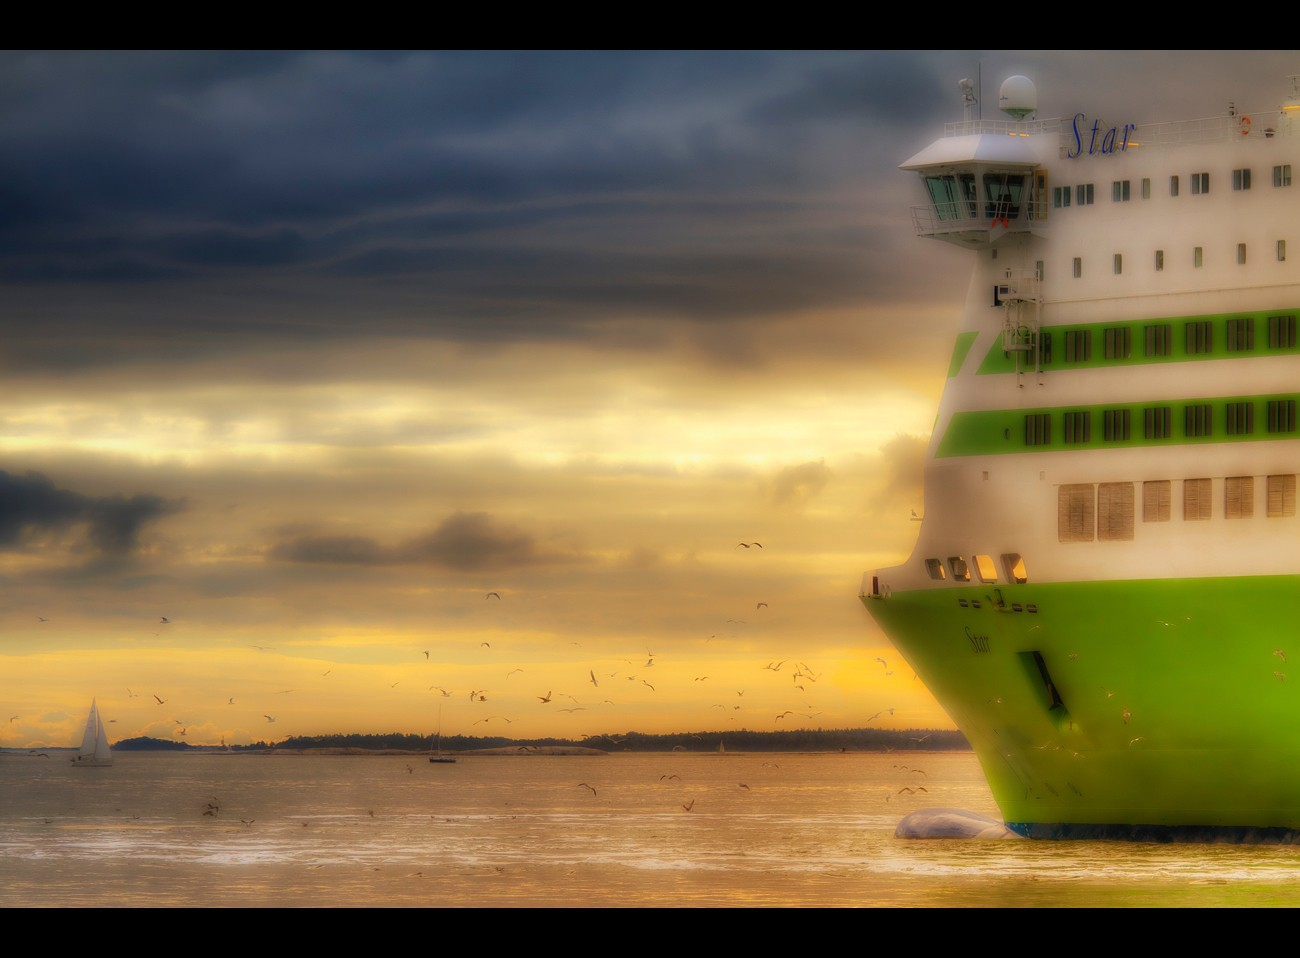 ships HDR Photography HD Wallpaper